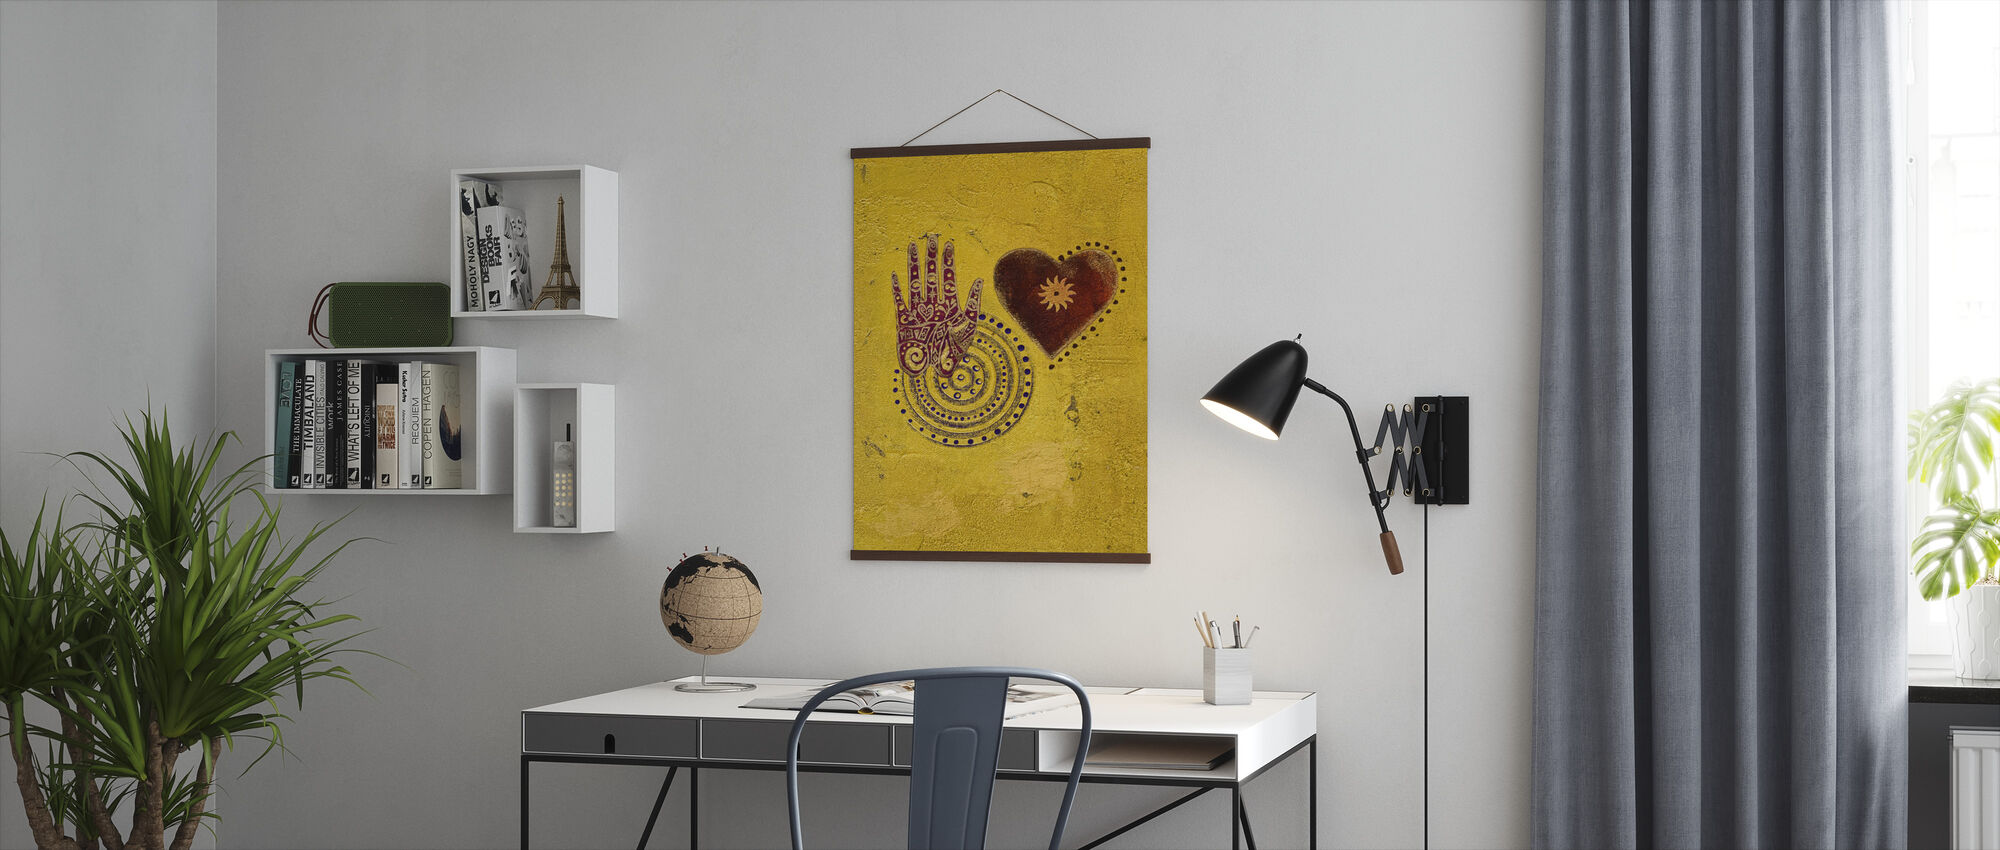 Heart and Hand Painting - Poster - Office